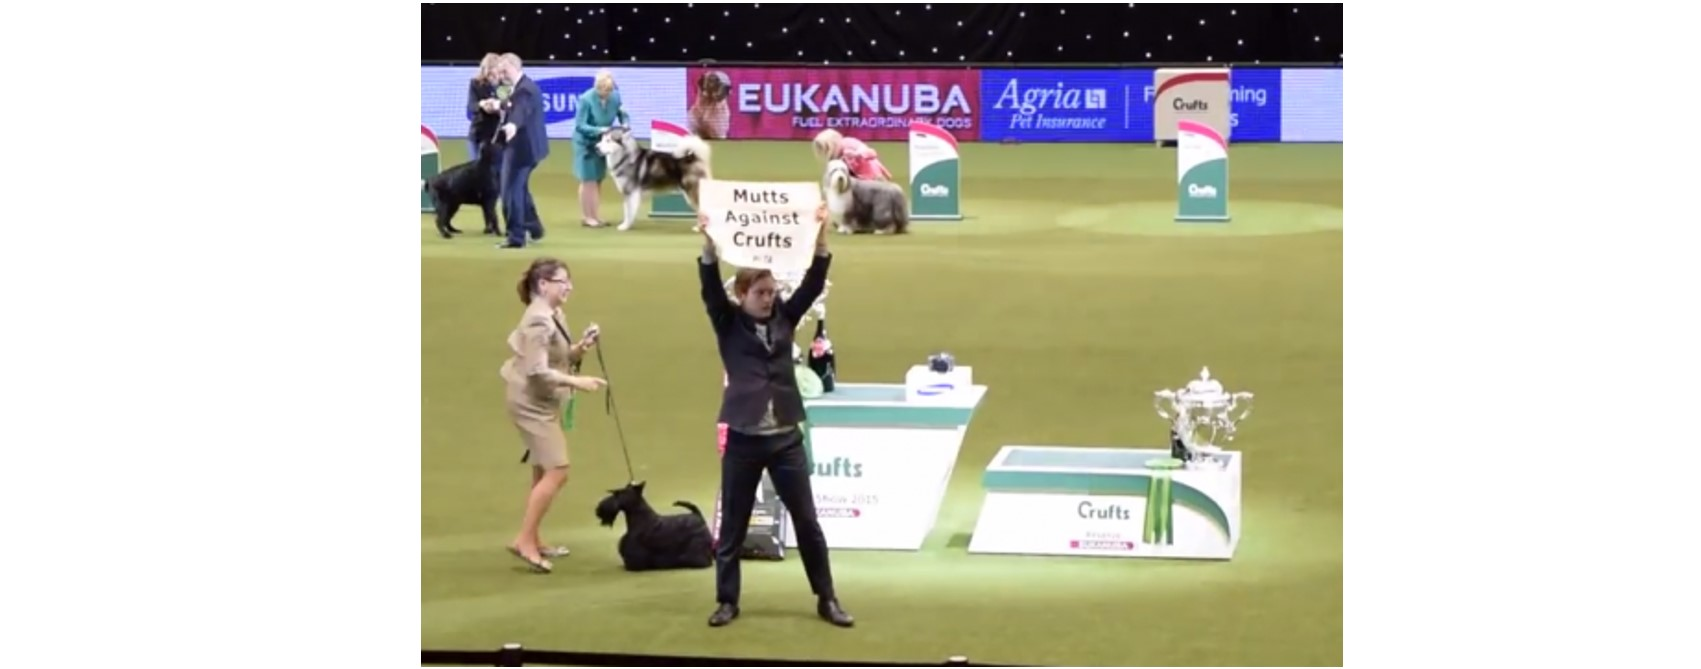 PETA protester holding sign at Crufts